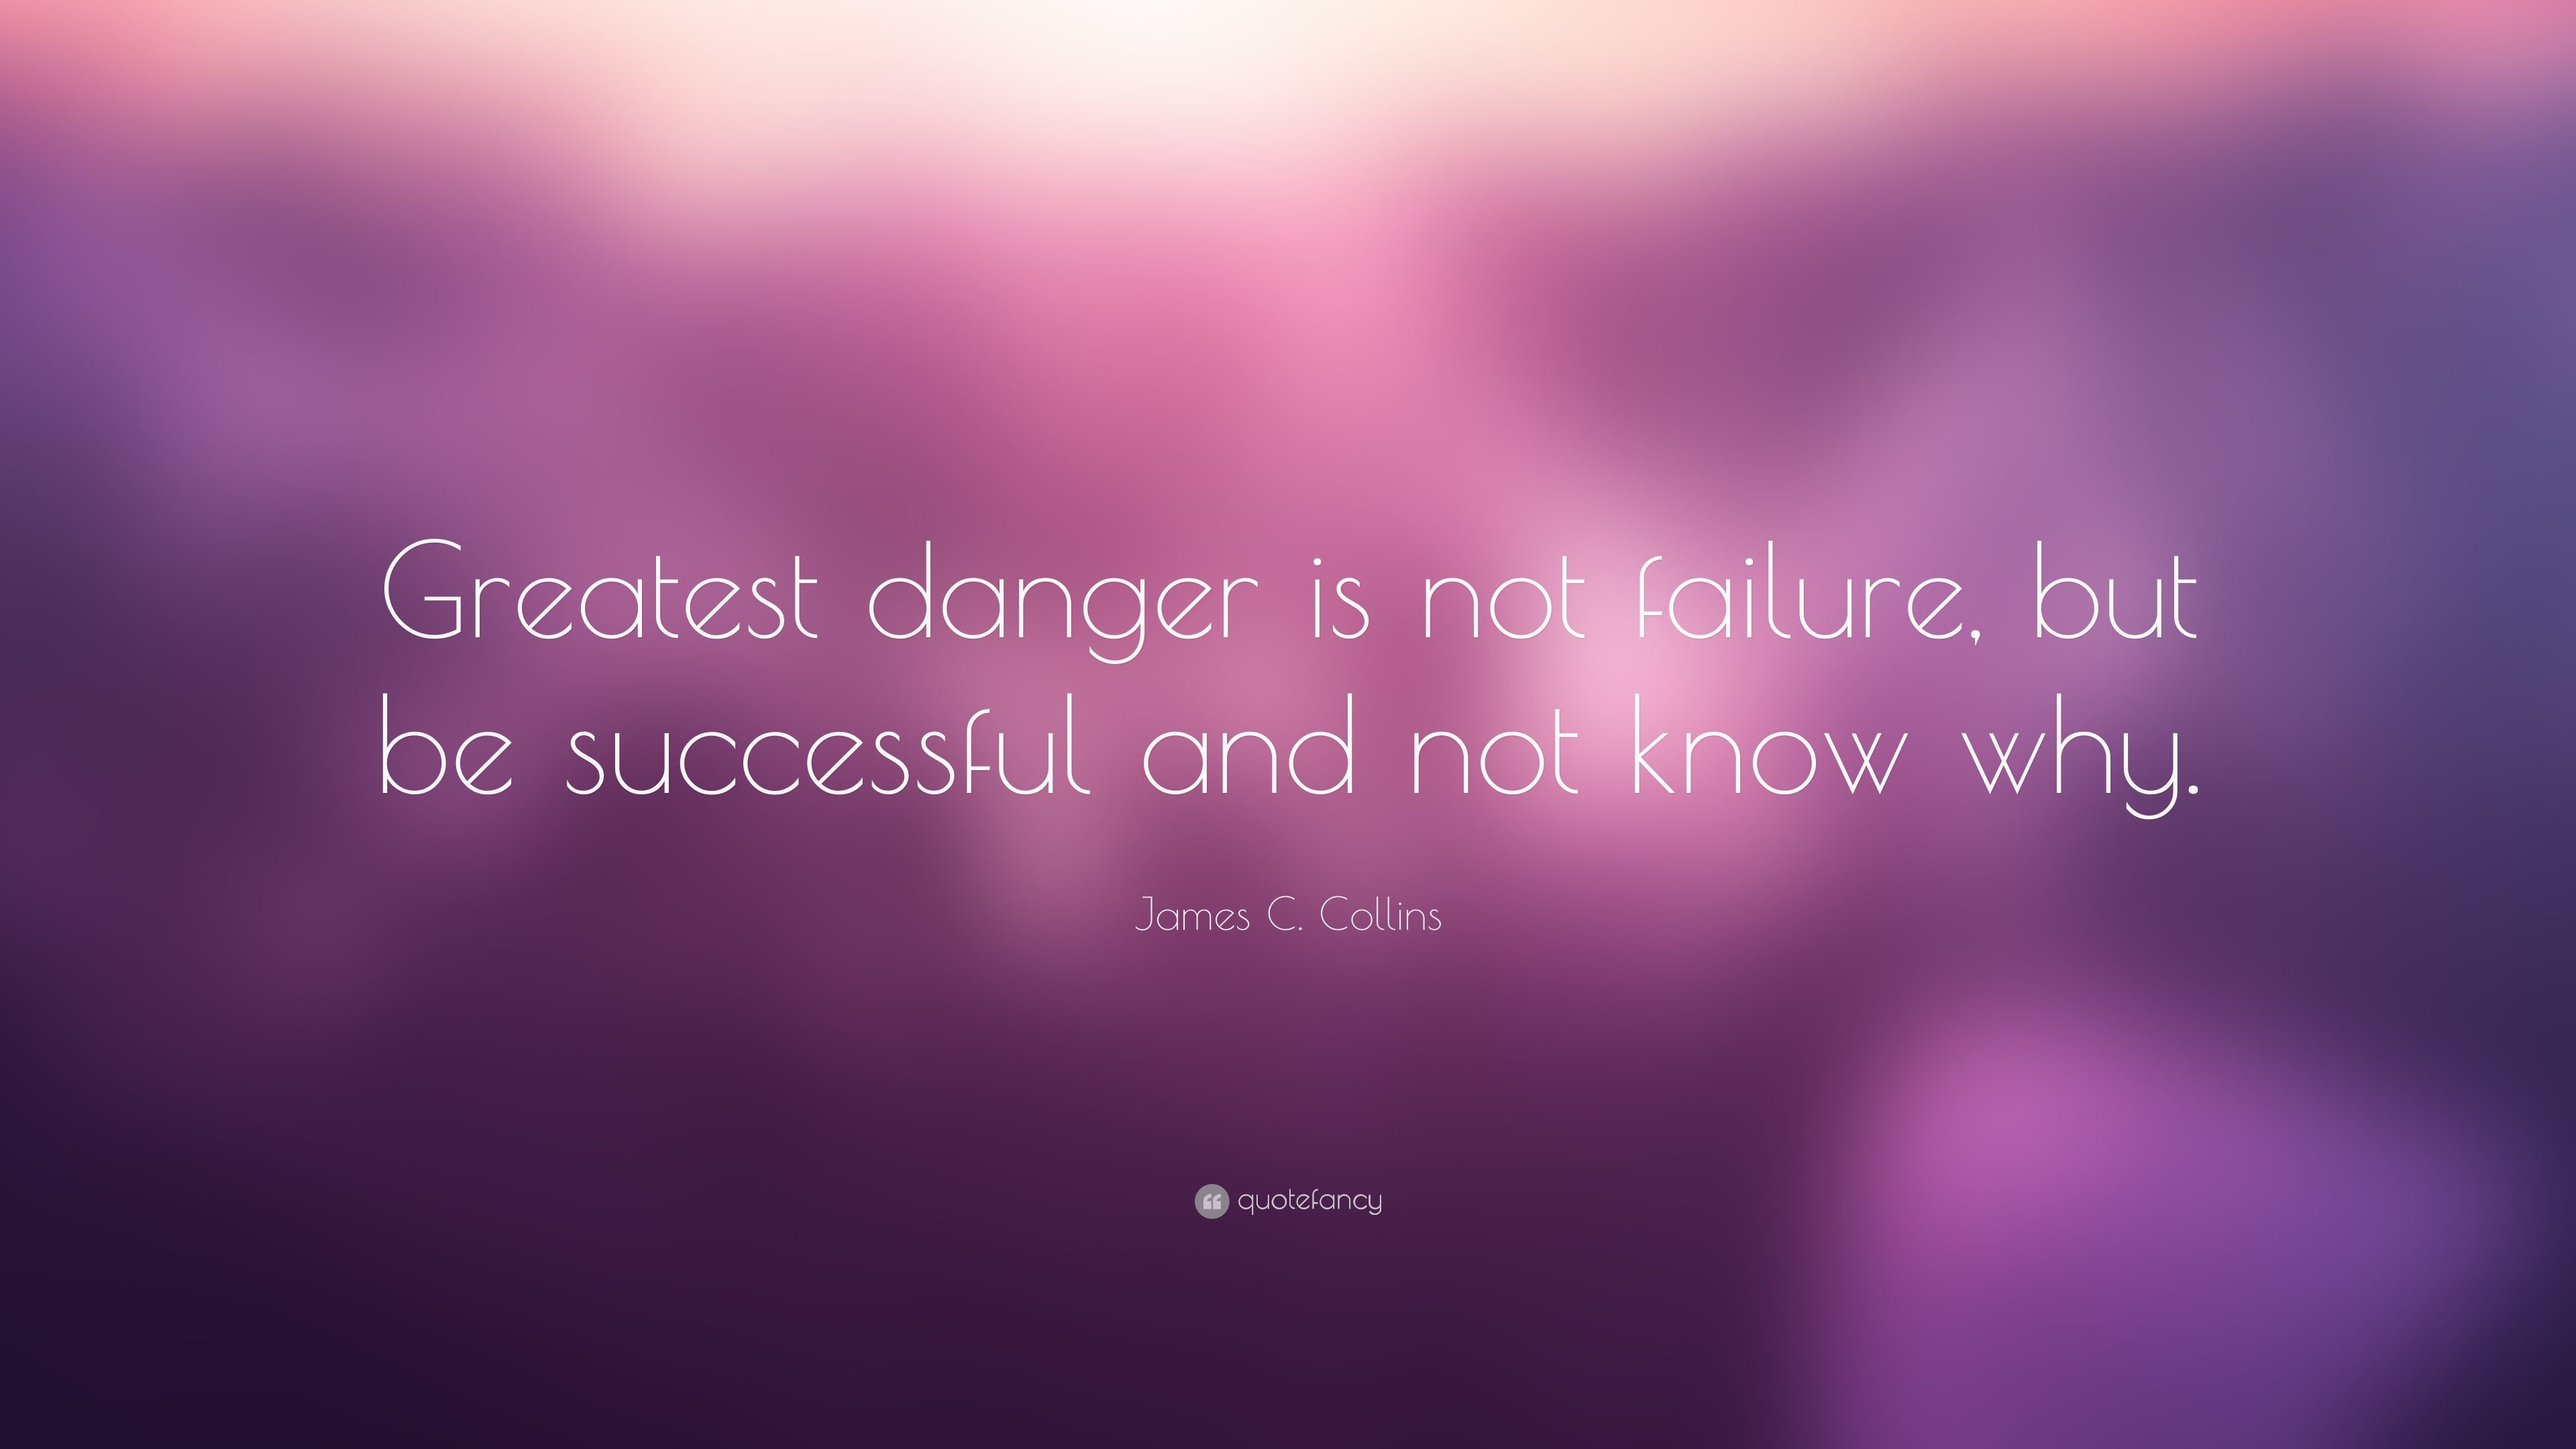 Motivational and inspirational quote - Failure is not the